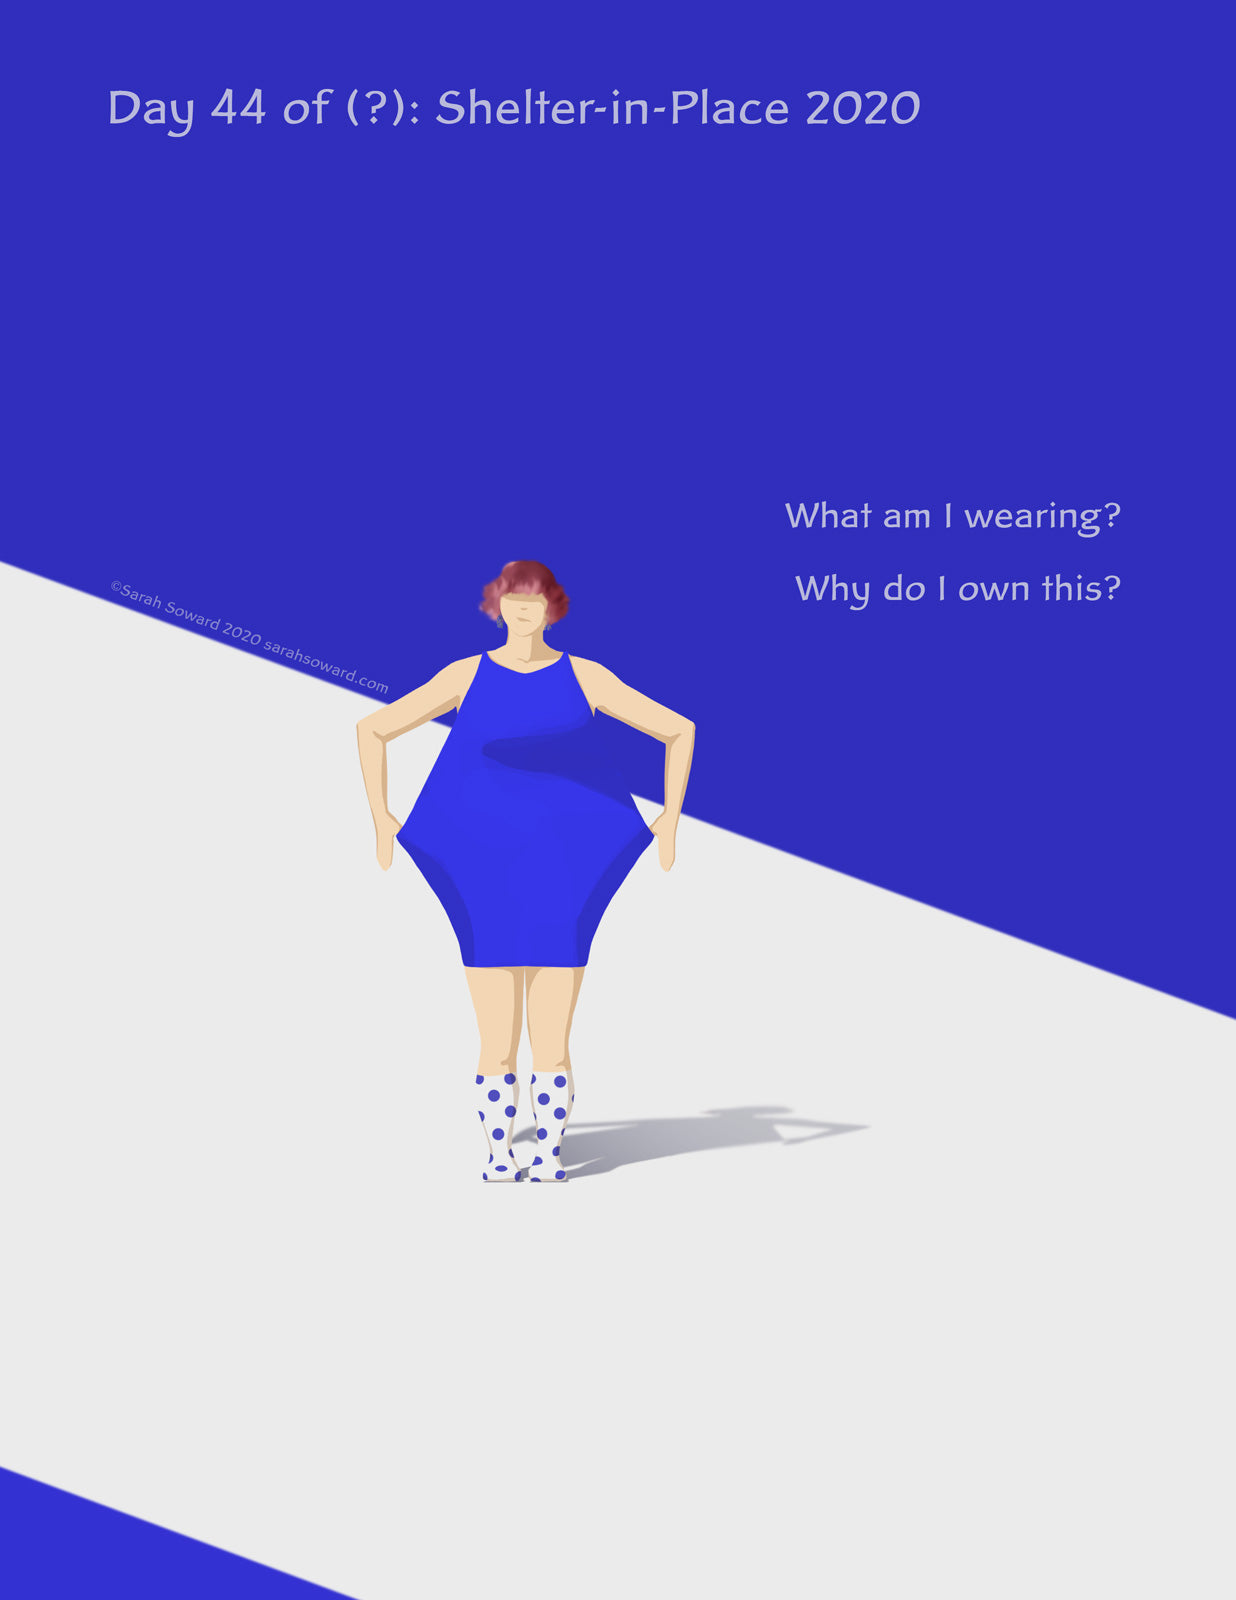 A confused and possibly disgruntled looking woman stands with her hands holding out the sides of her dress. It's oddly shaped like a kite. Her socks have polka dots on them. The text on the image reads  What am I wearing? Why do I own this?